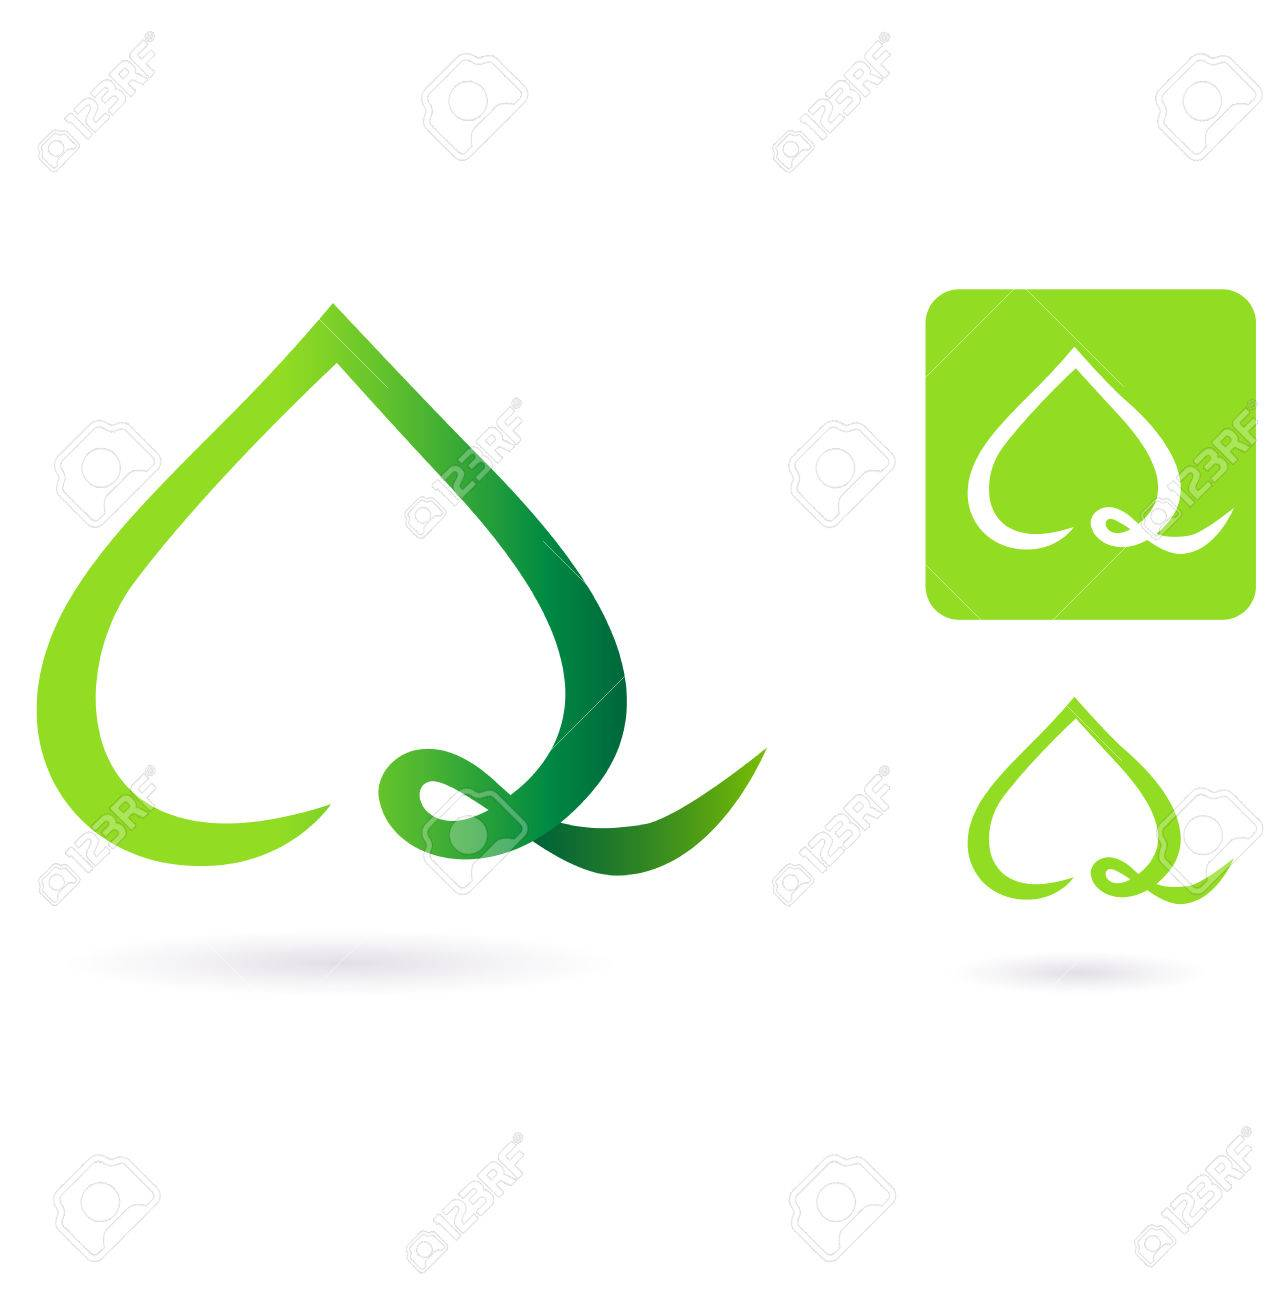 Nature heart leaf icon. Illustration of heart shaped green leaf. Stock Vector - 8098070